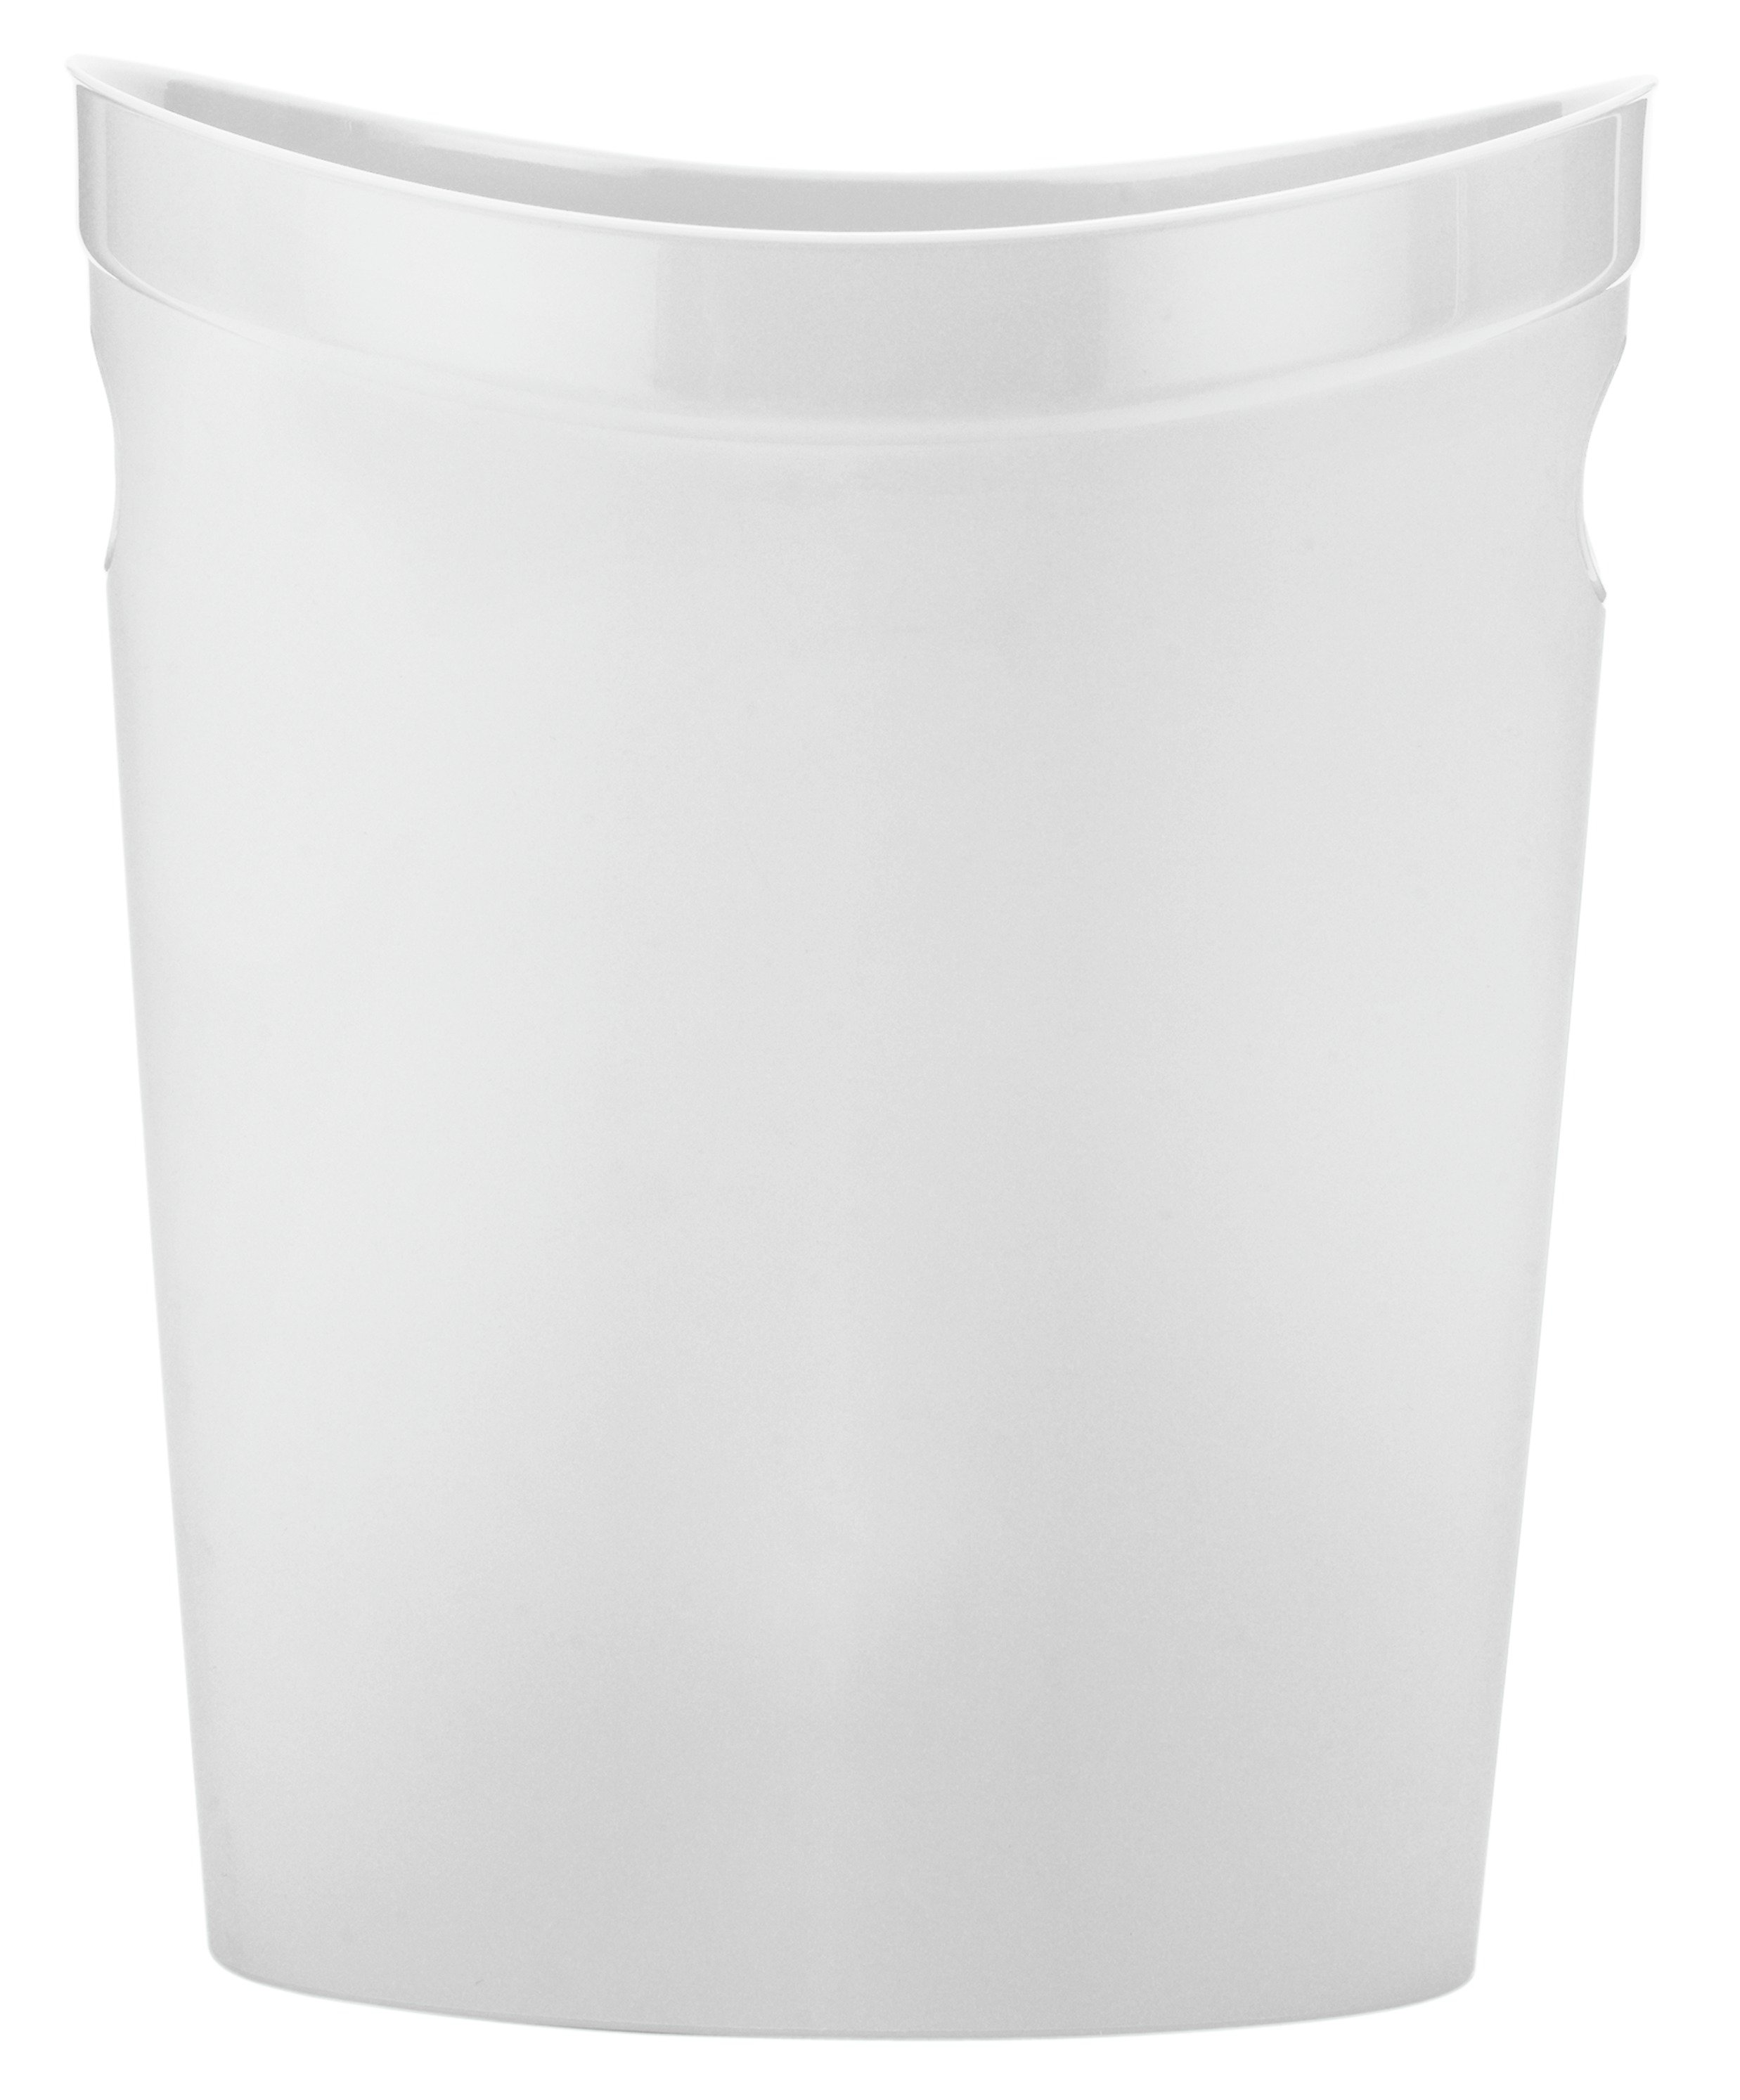 addis-10-litre-bathroom-flexi-bin